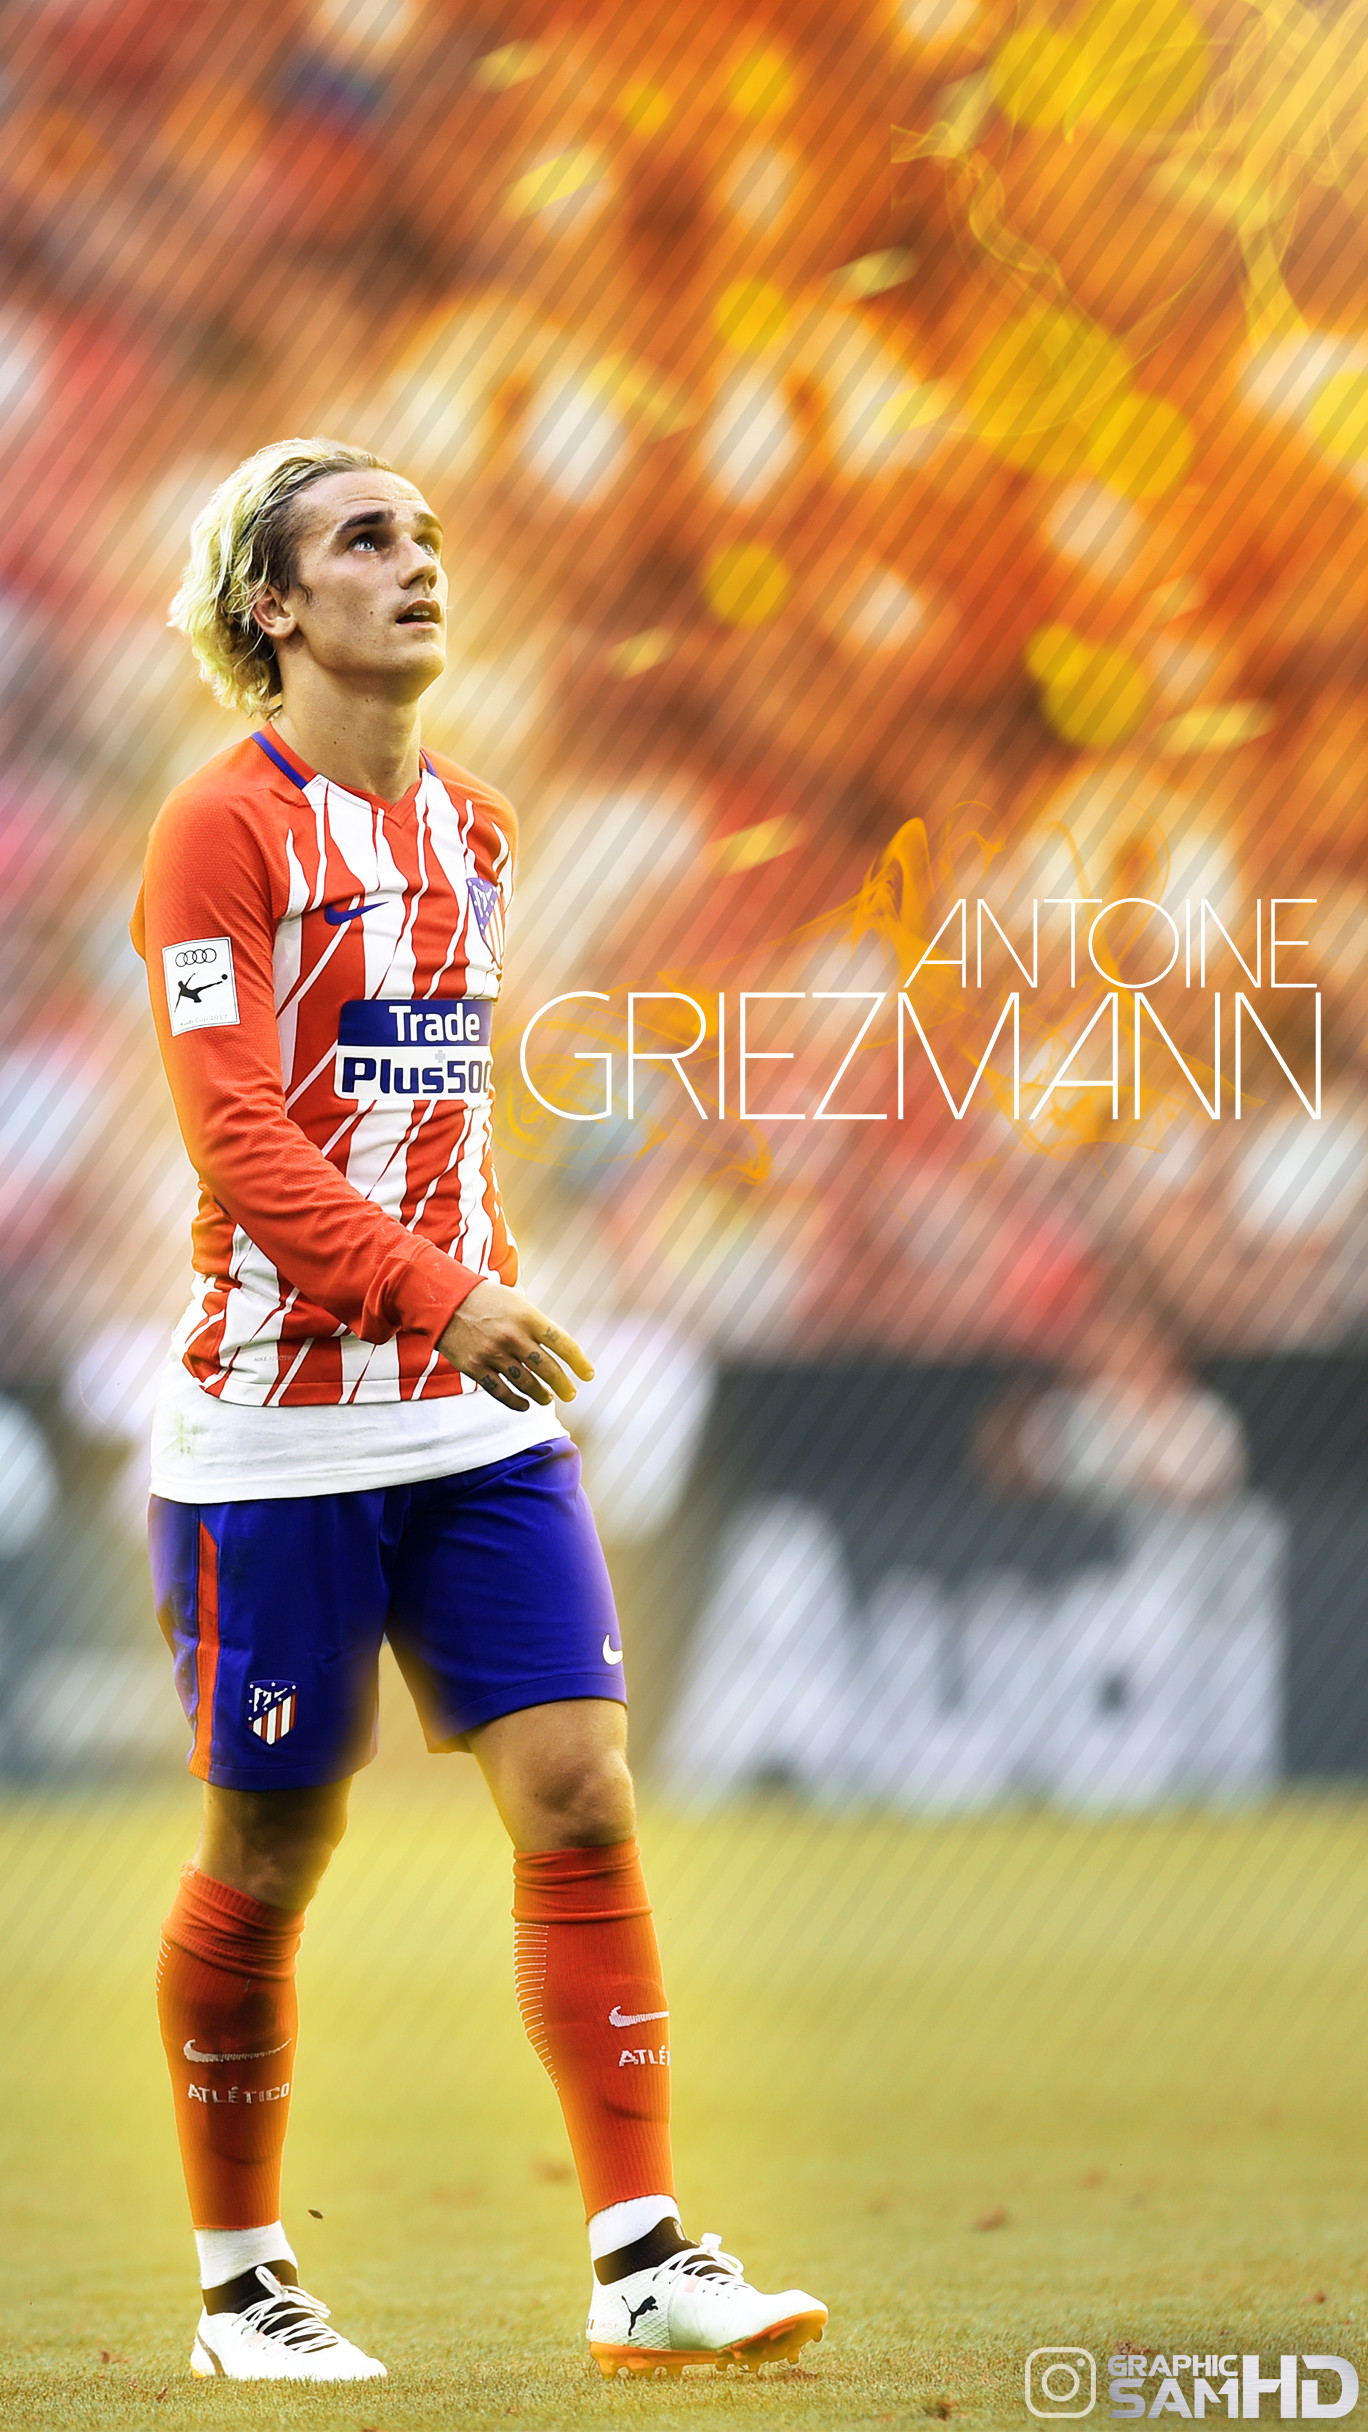 Antoine griezmann wallpapers 86 images - Antoine griezmann ...